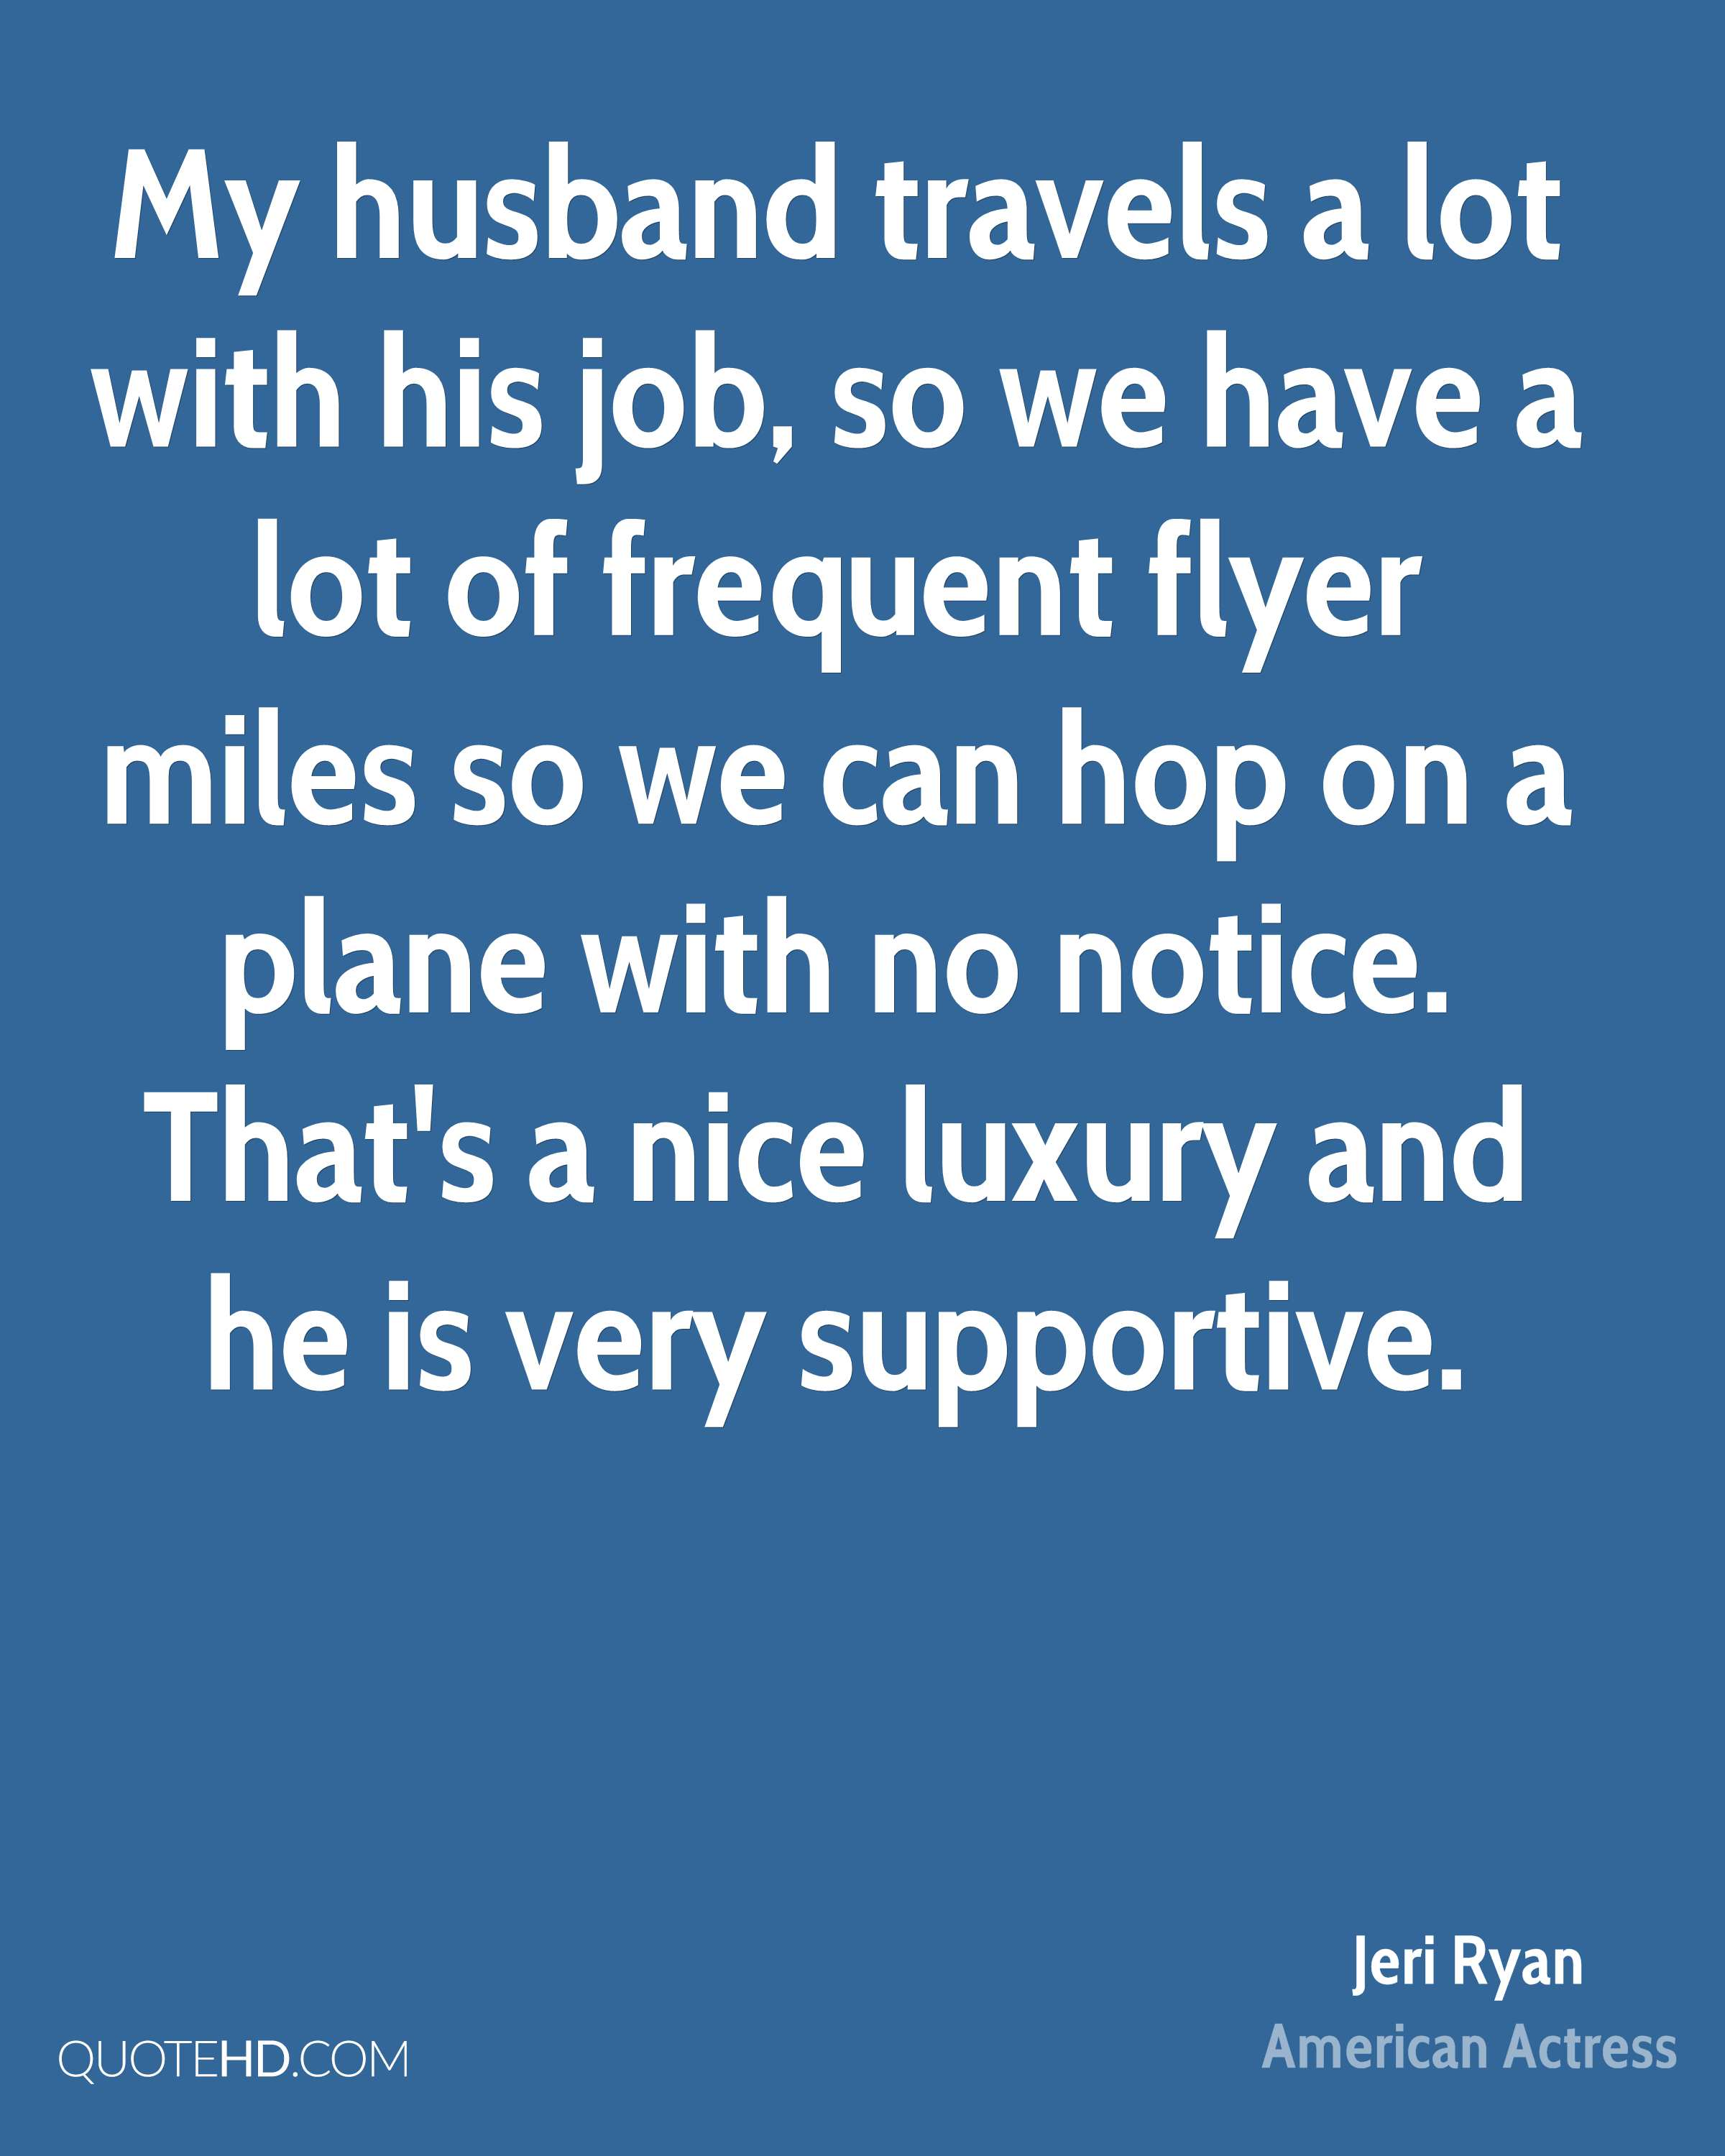 My husband travels a lot with his job, so we have a lot of frequent flyer miles so we can hop on a plane with no notice. That's a nice luxury and he is very supportive.